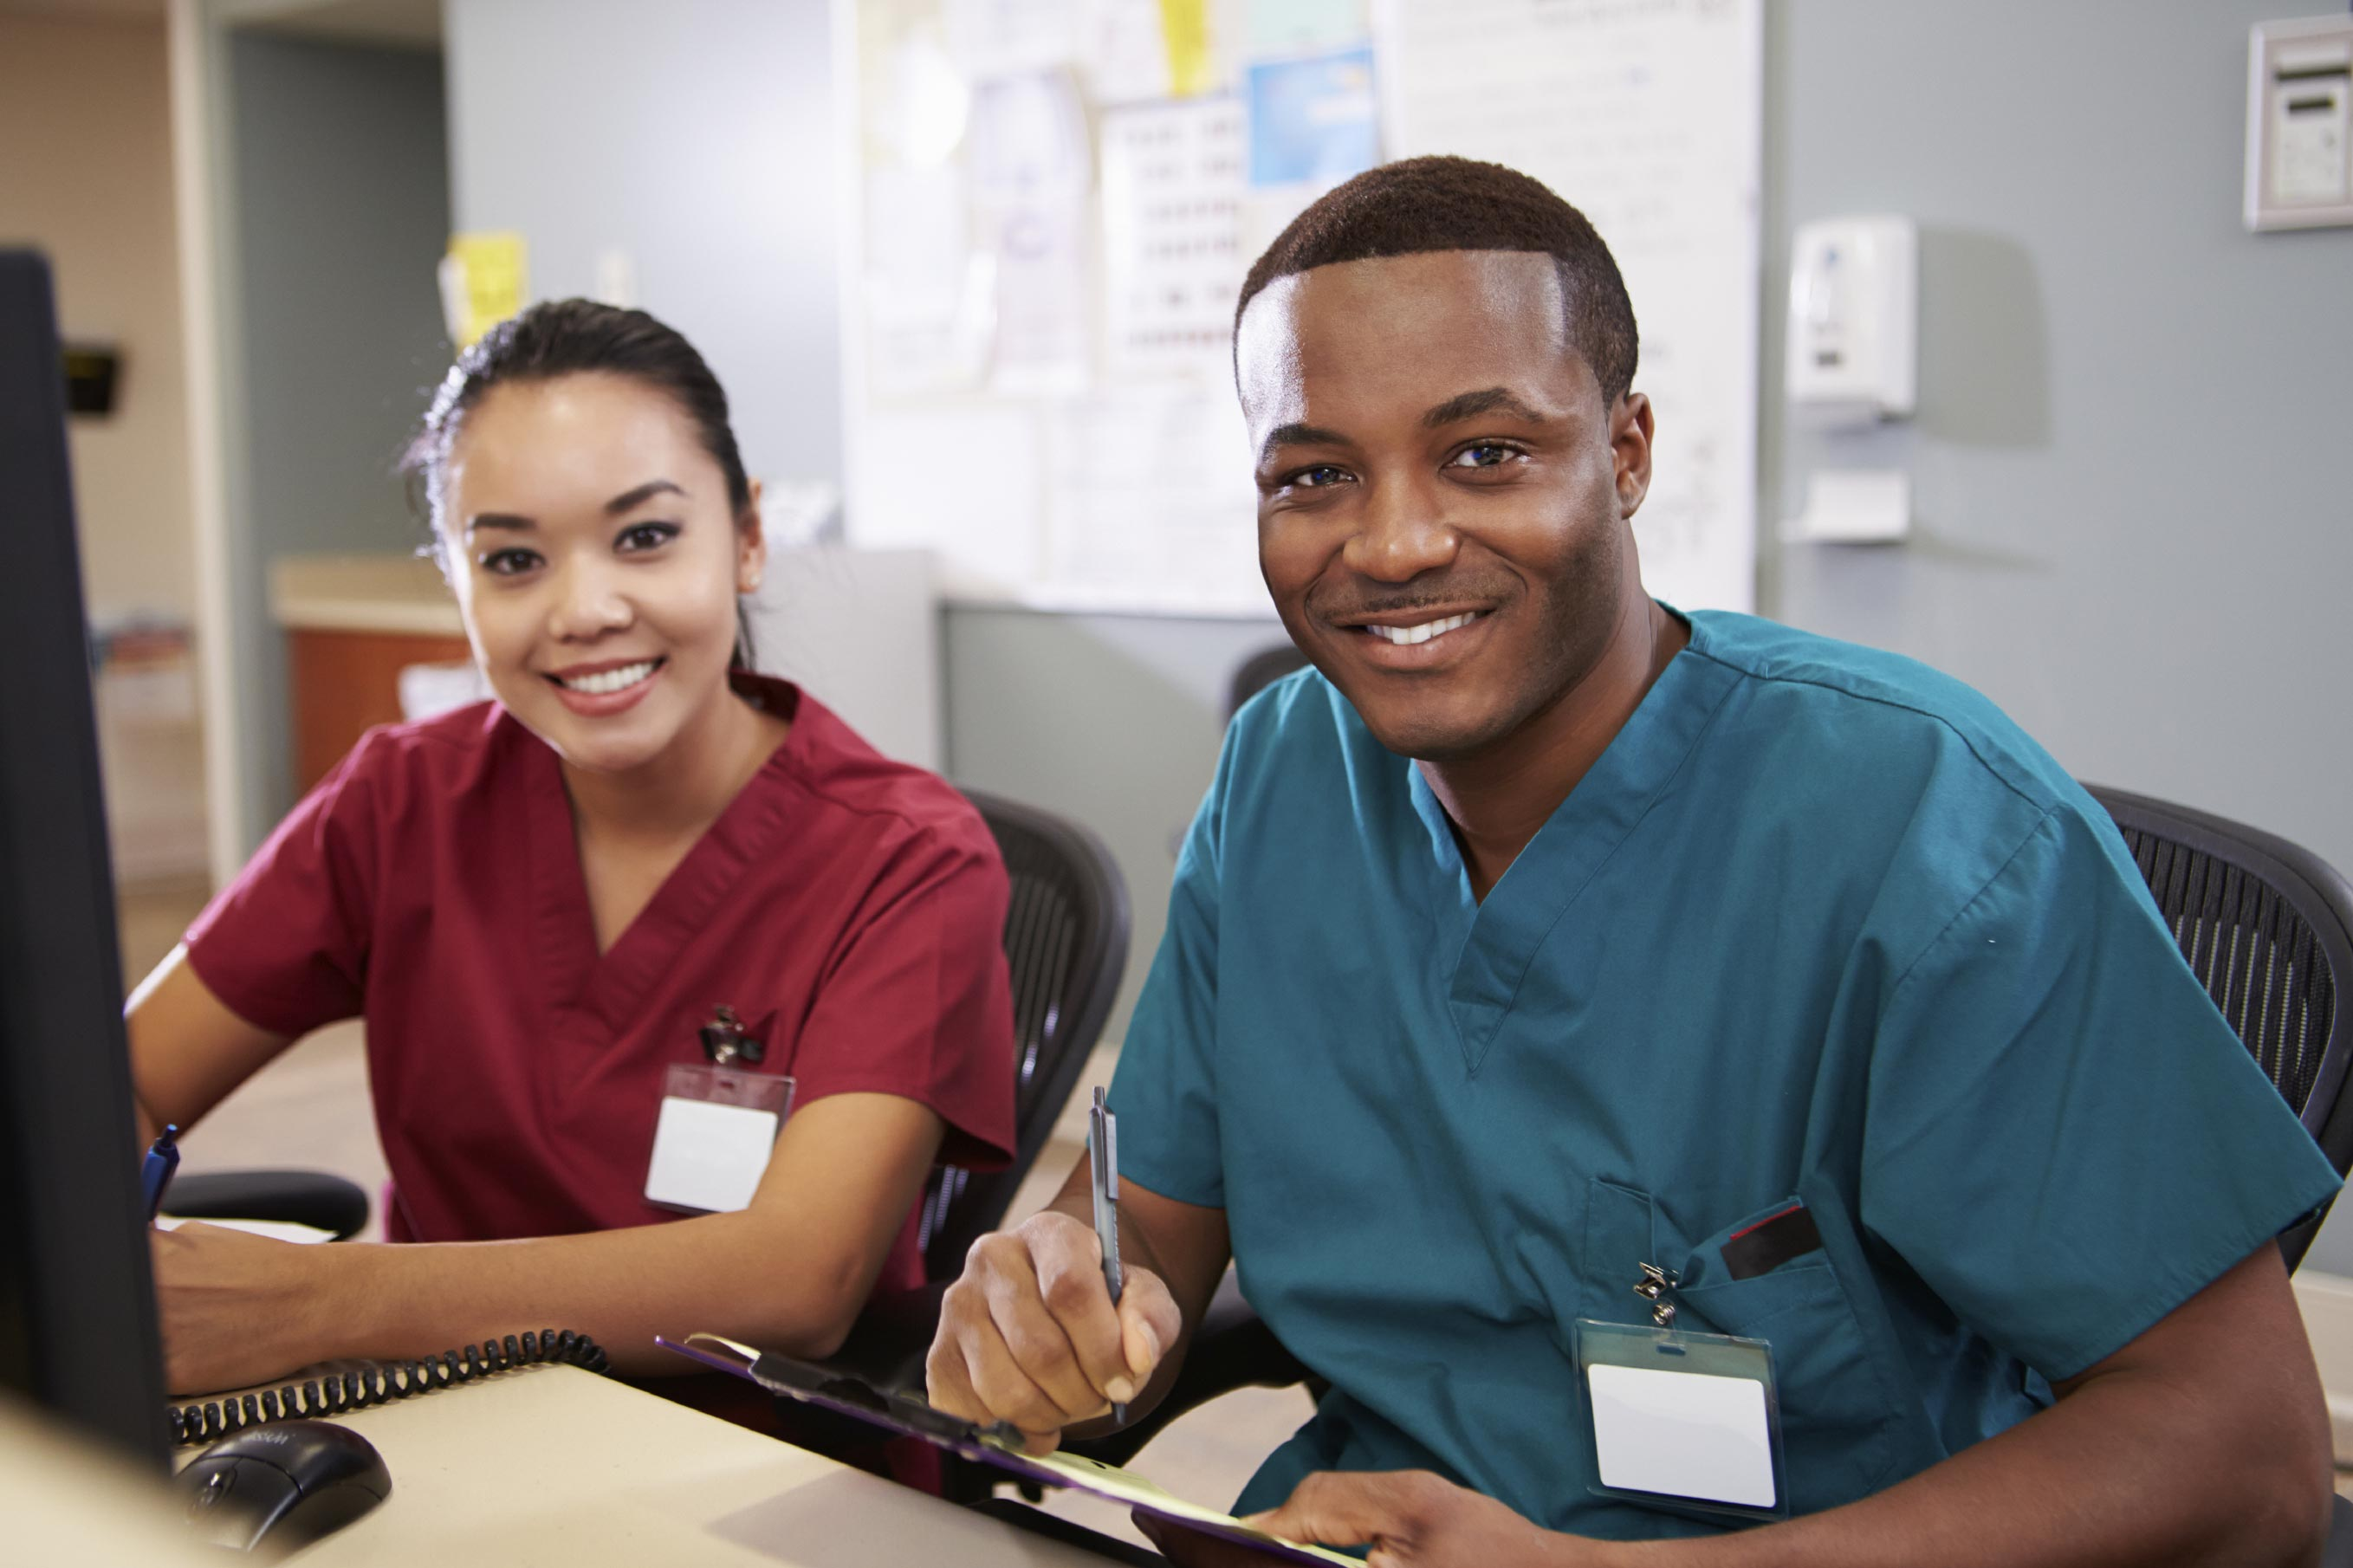 Medical Office Assistant   Pensacola, FL Area   Snelling Staffing Services